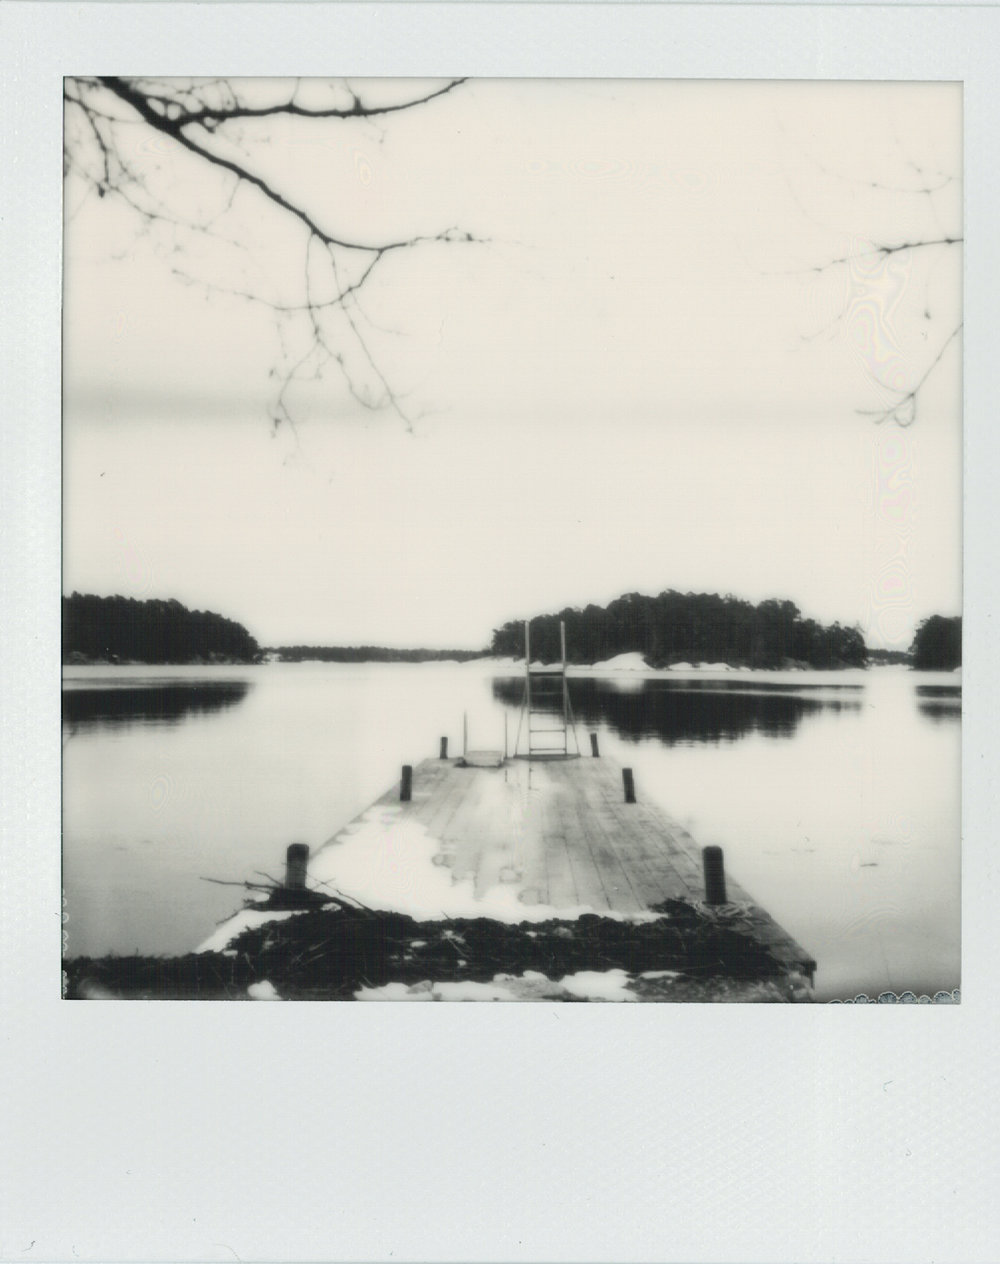 Pier | SX-70 | Impossible Project Black and White SX-70 film | Ioana Taut